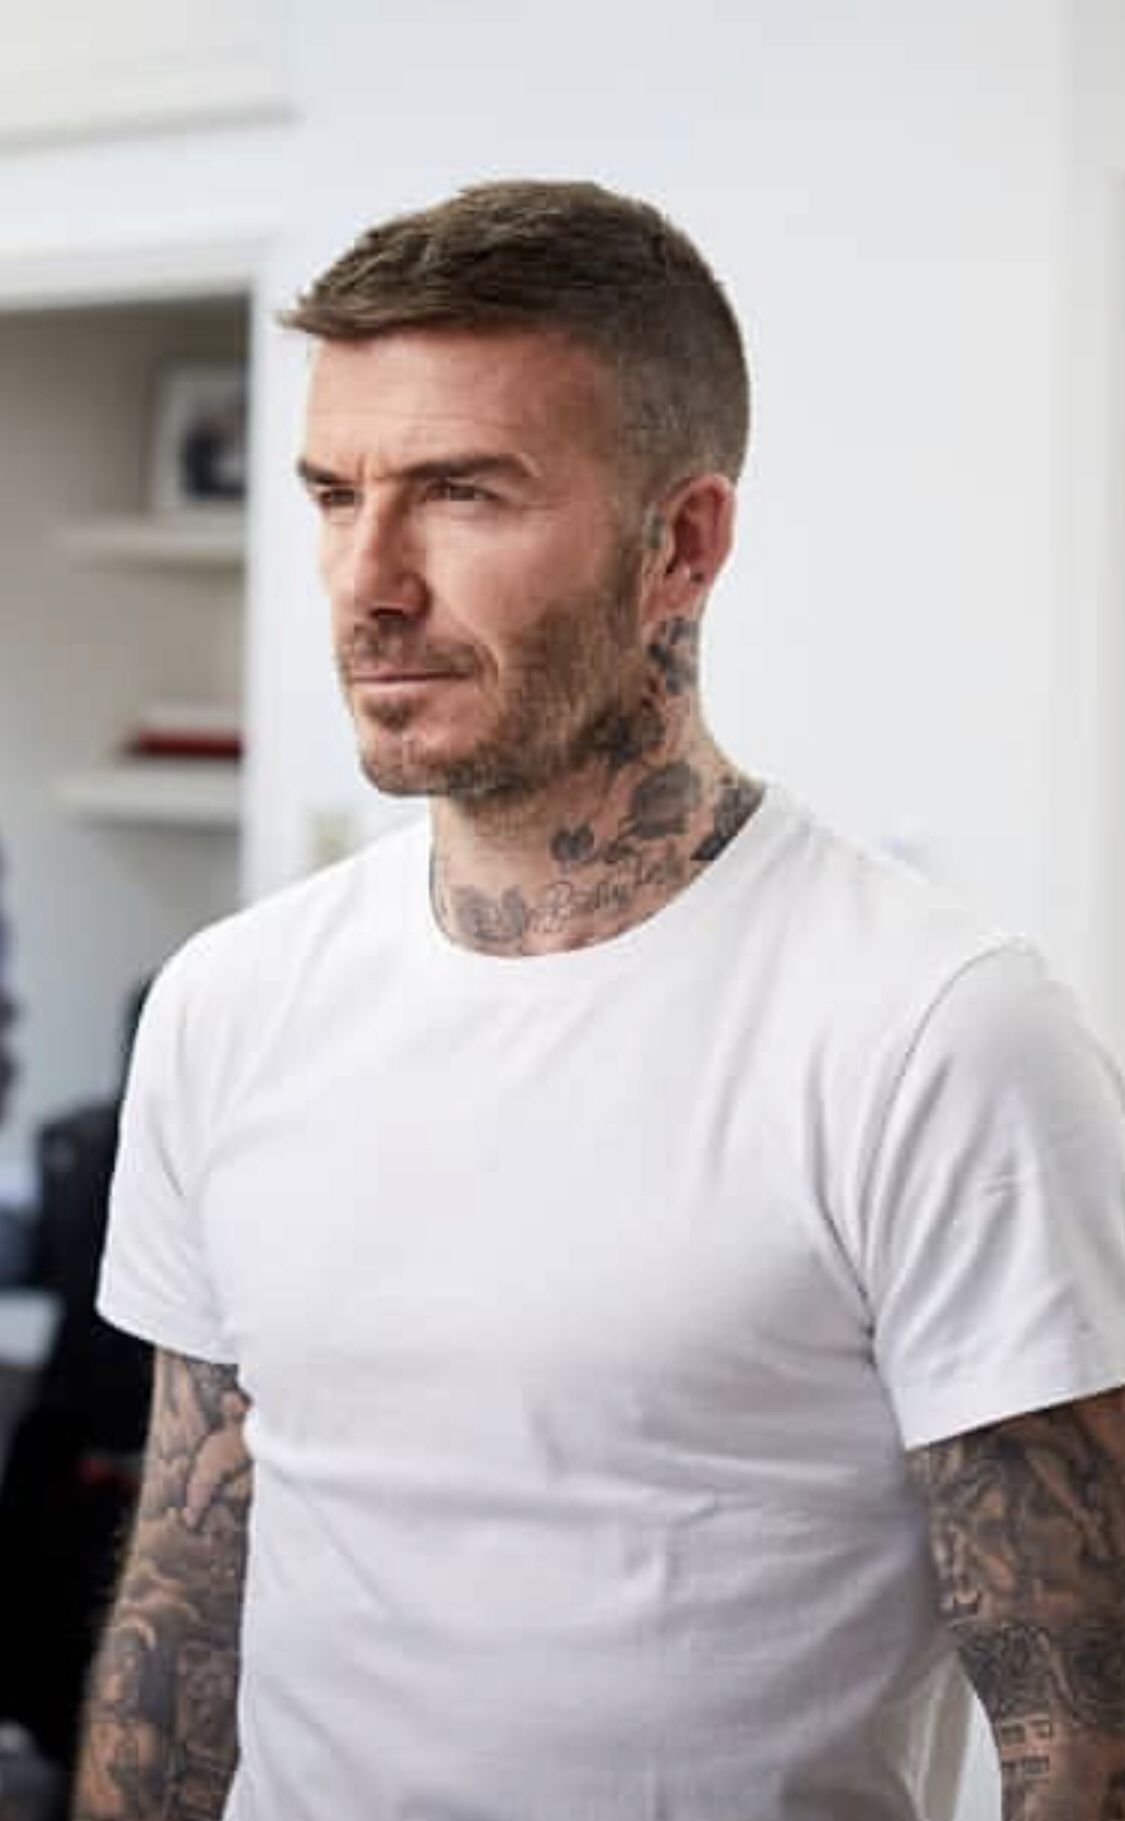 Pin By David Beckham On David Beckham Beckham Hair David Beckham Hairstyle Mens Hairstyles Short